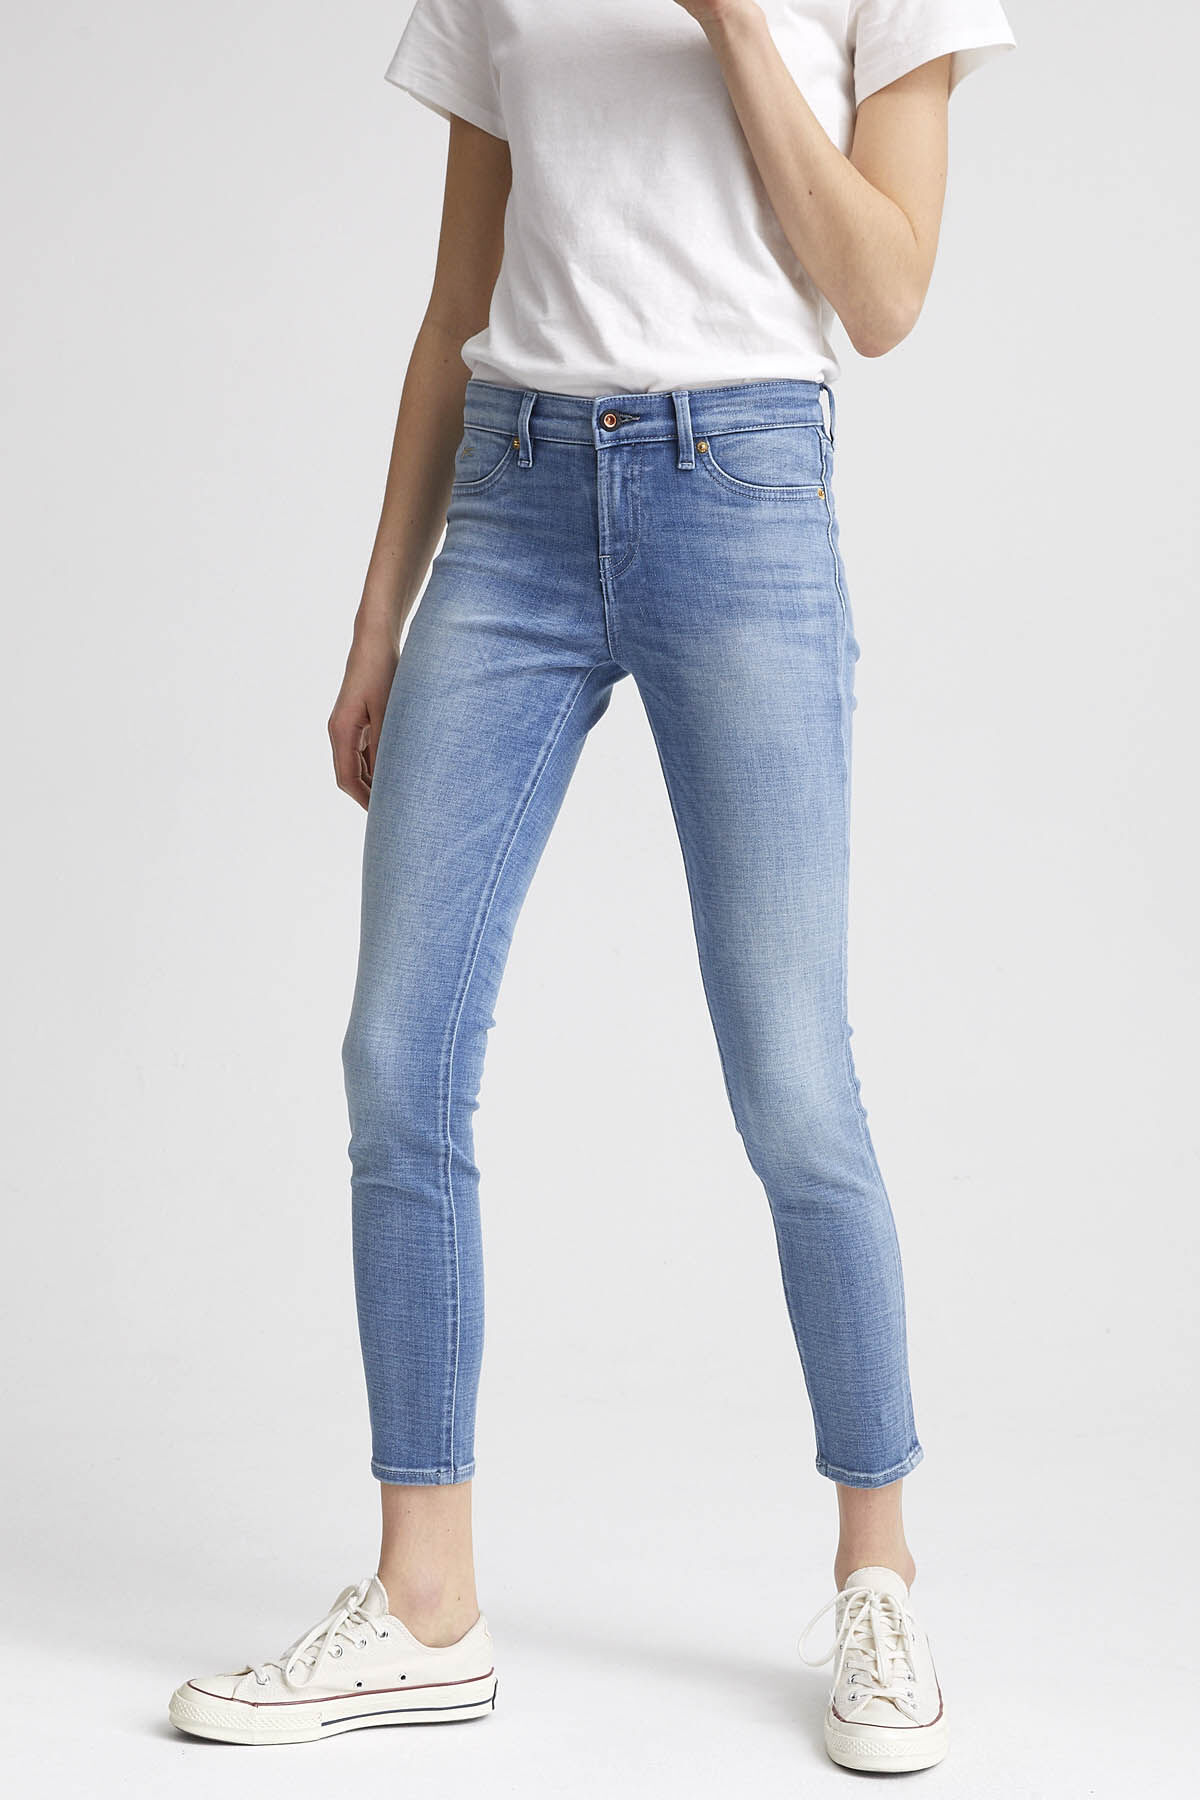 SPRAY Left-hand Denim - Mid-rise, Tight Fit